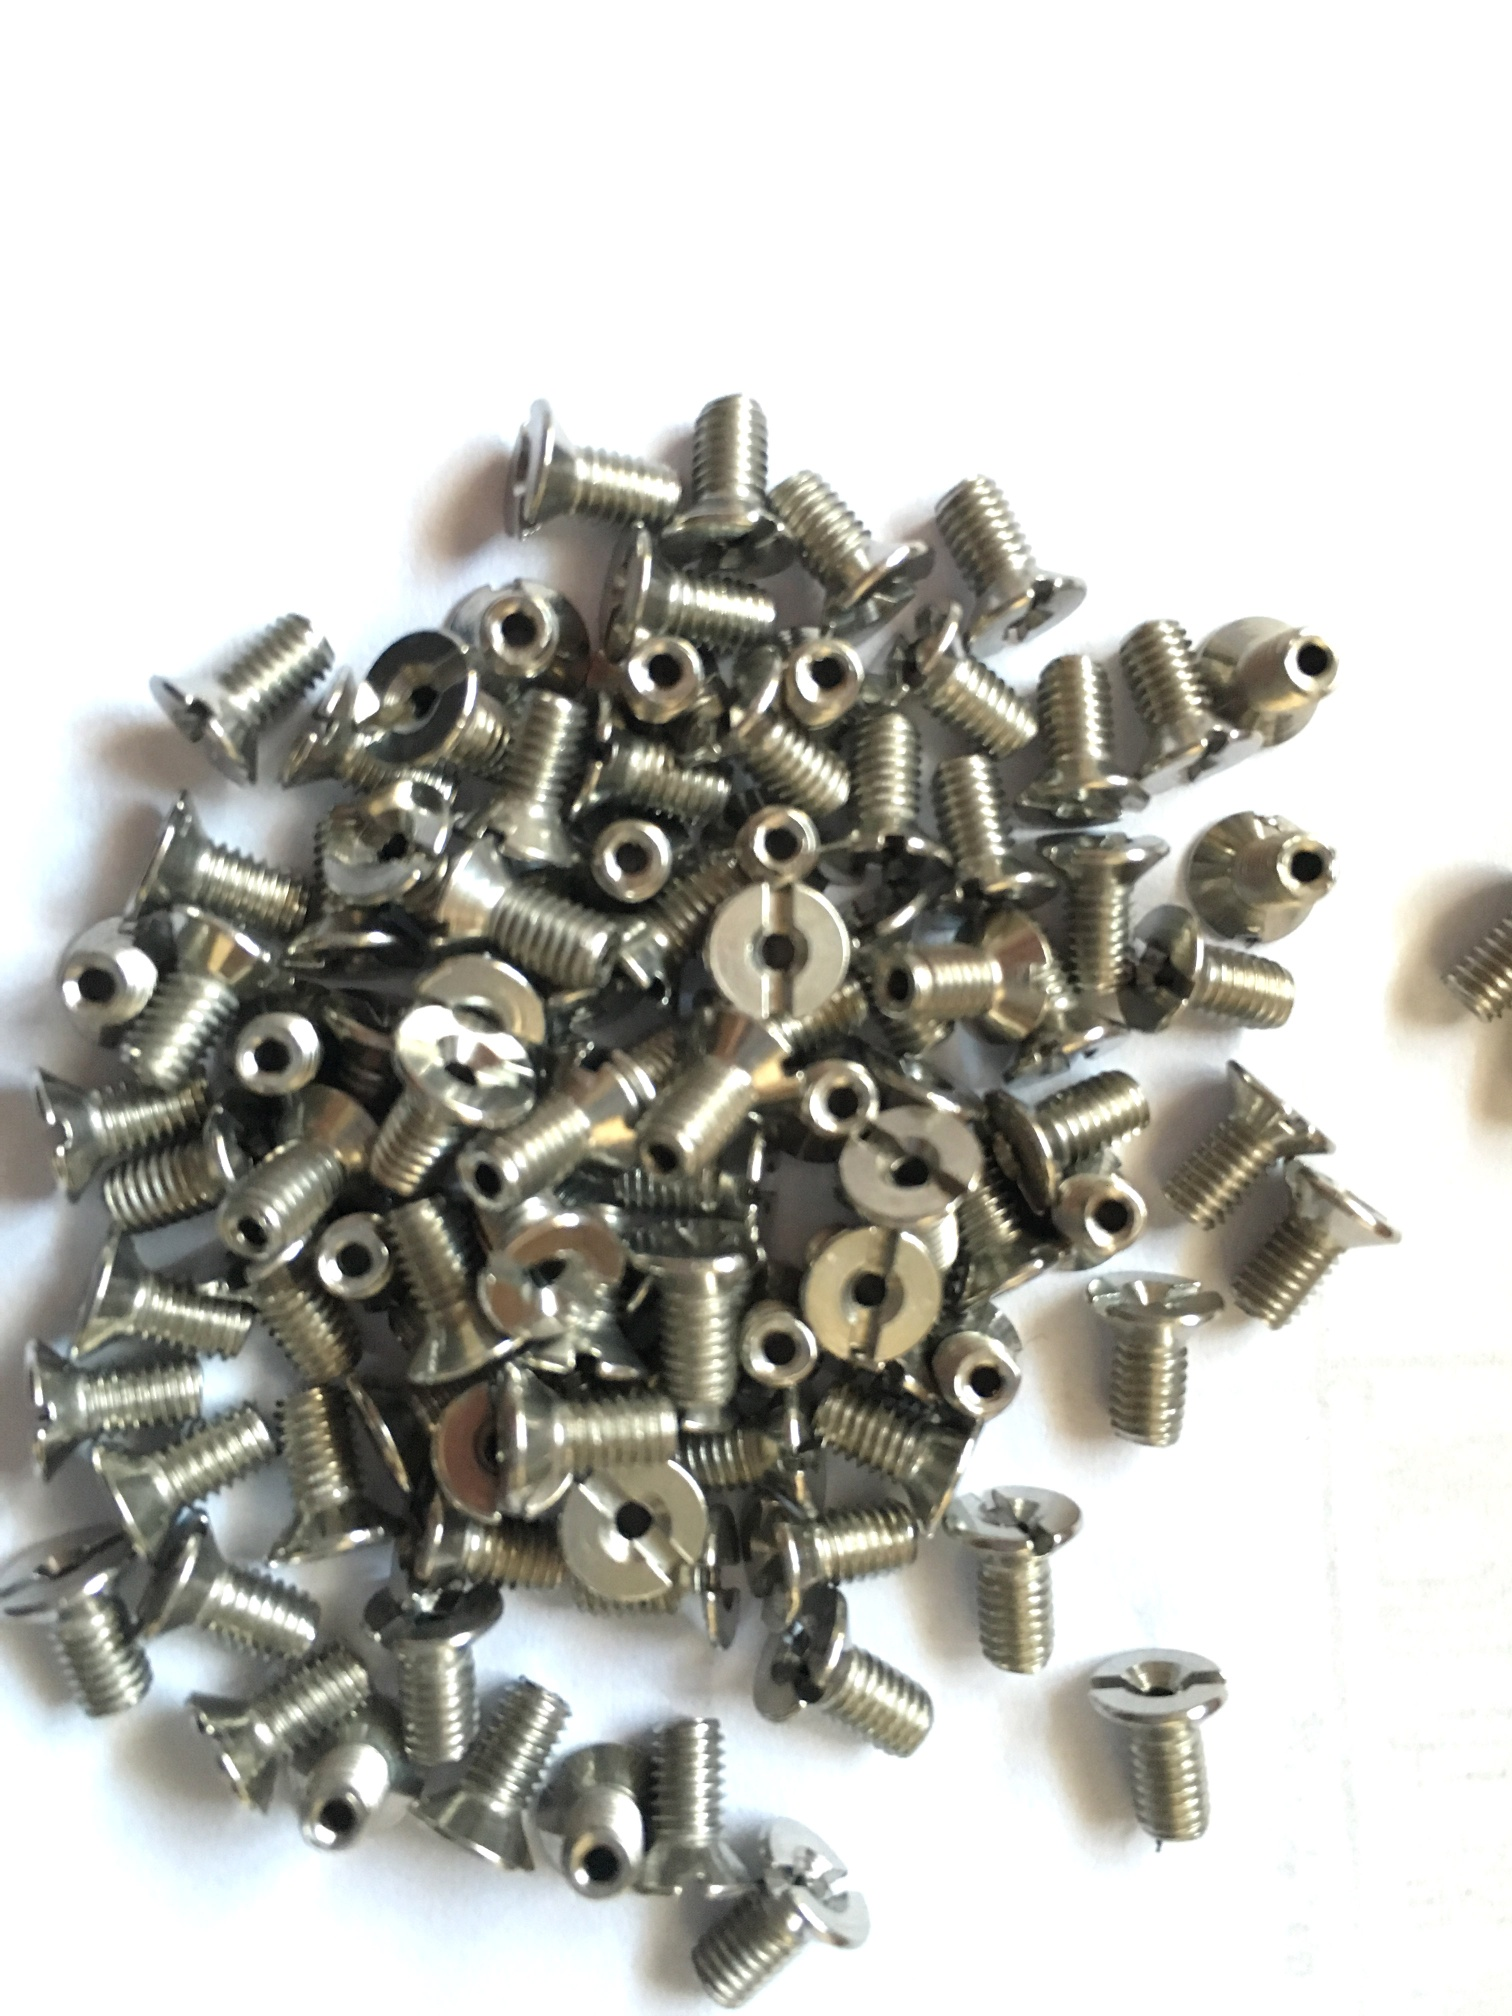 Titanium Screw - Titanium Screw